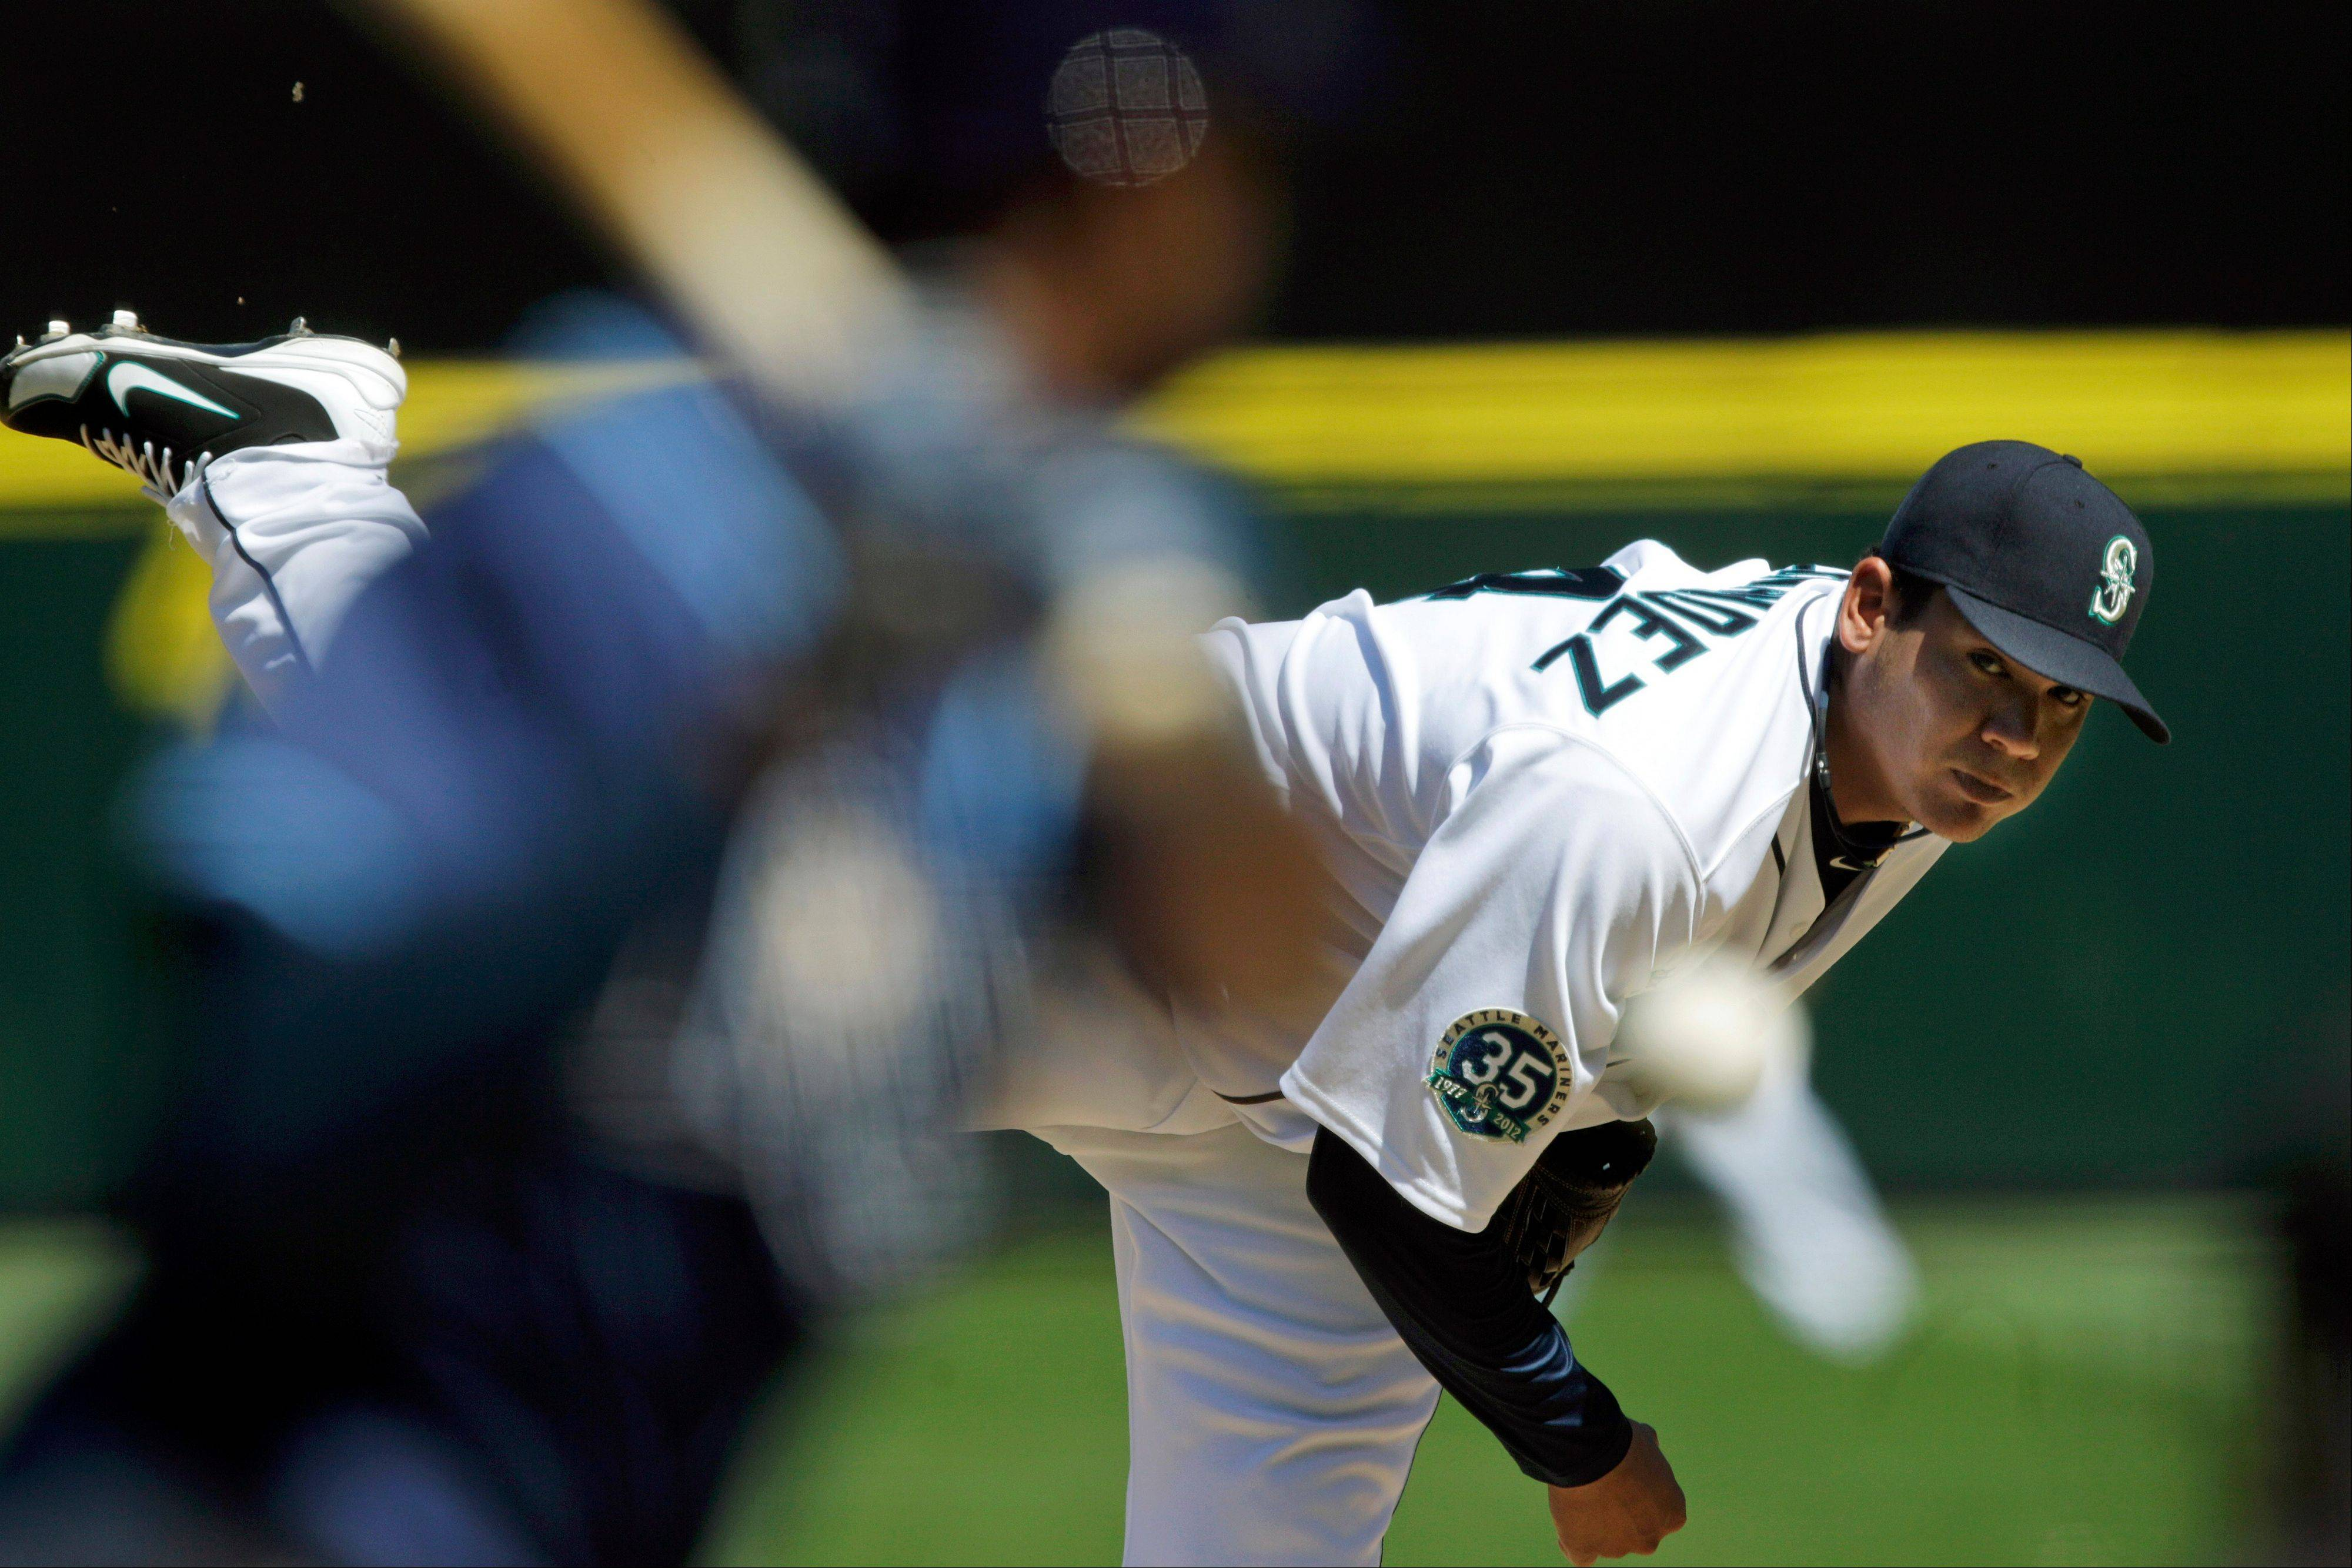 Seattle Mariners starting pitcher Felix Hernandez throws against the Tampa Bay Rays Wednesday during the fourth inning.